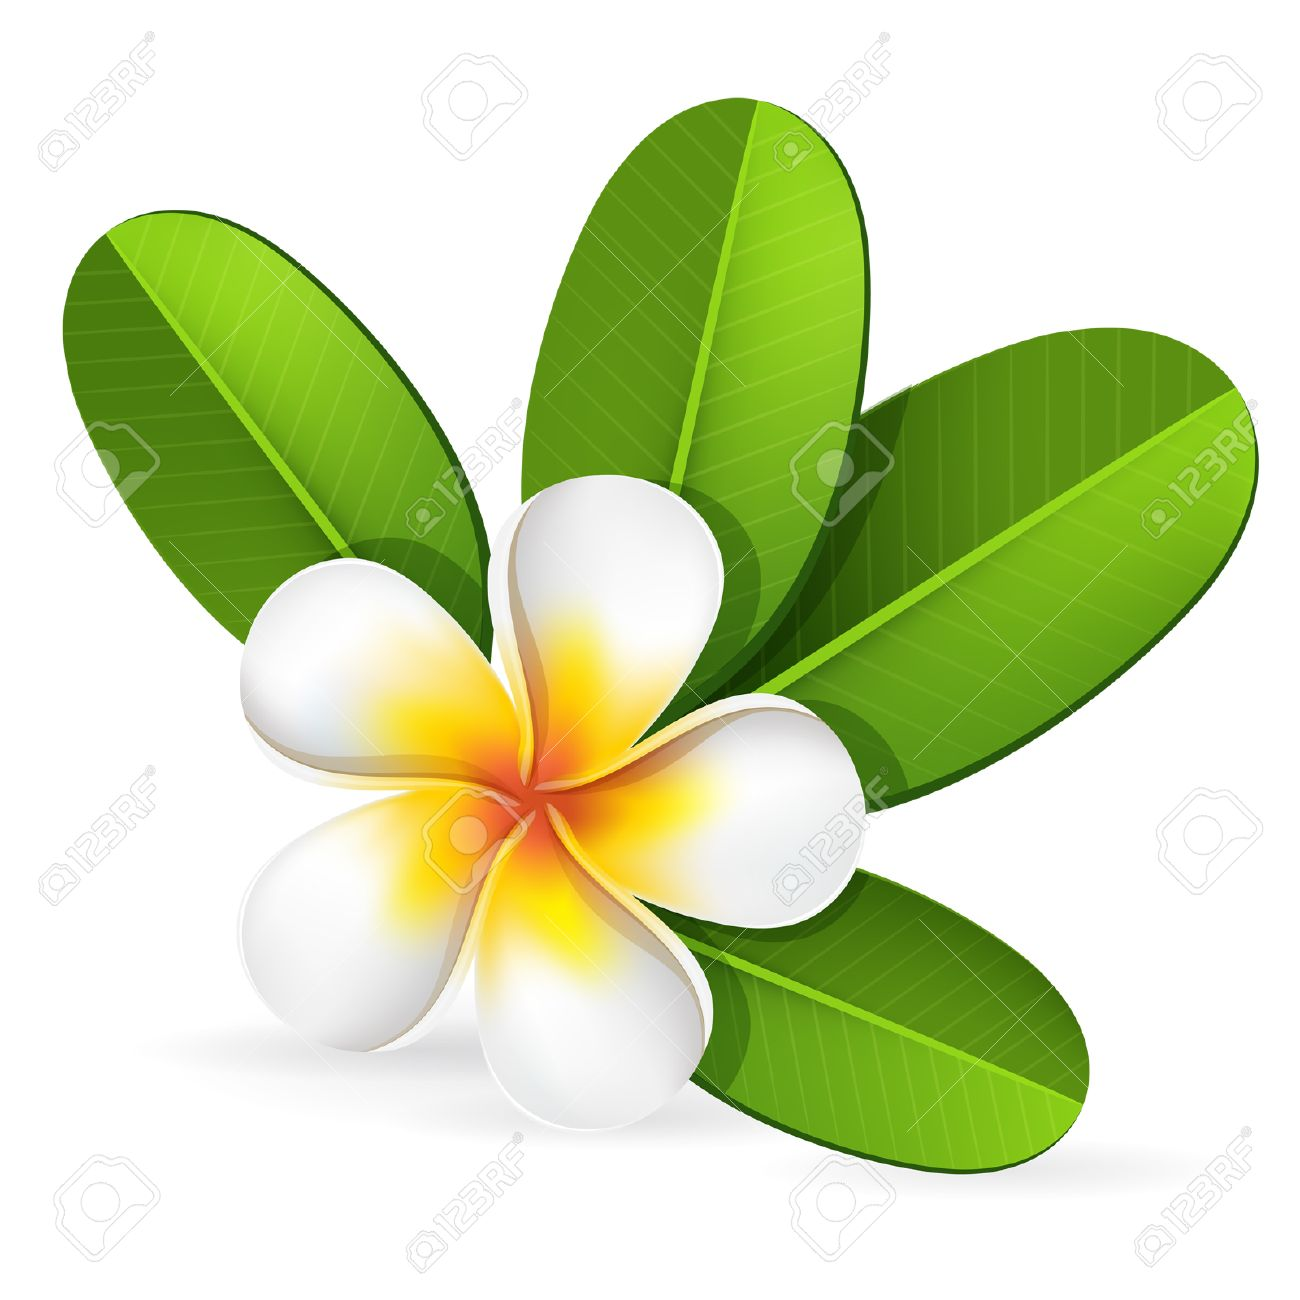 Summer Spa Frangipani, Plumeria Tropical Flower With Green Leaves ...